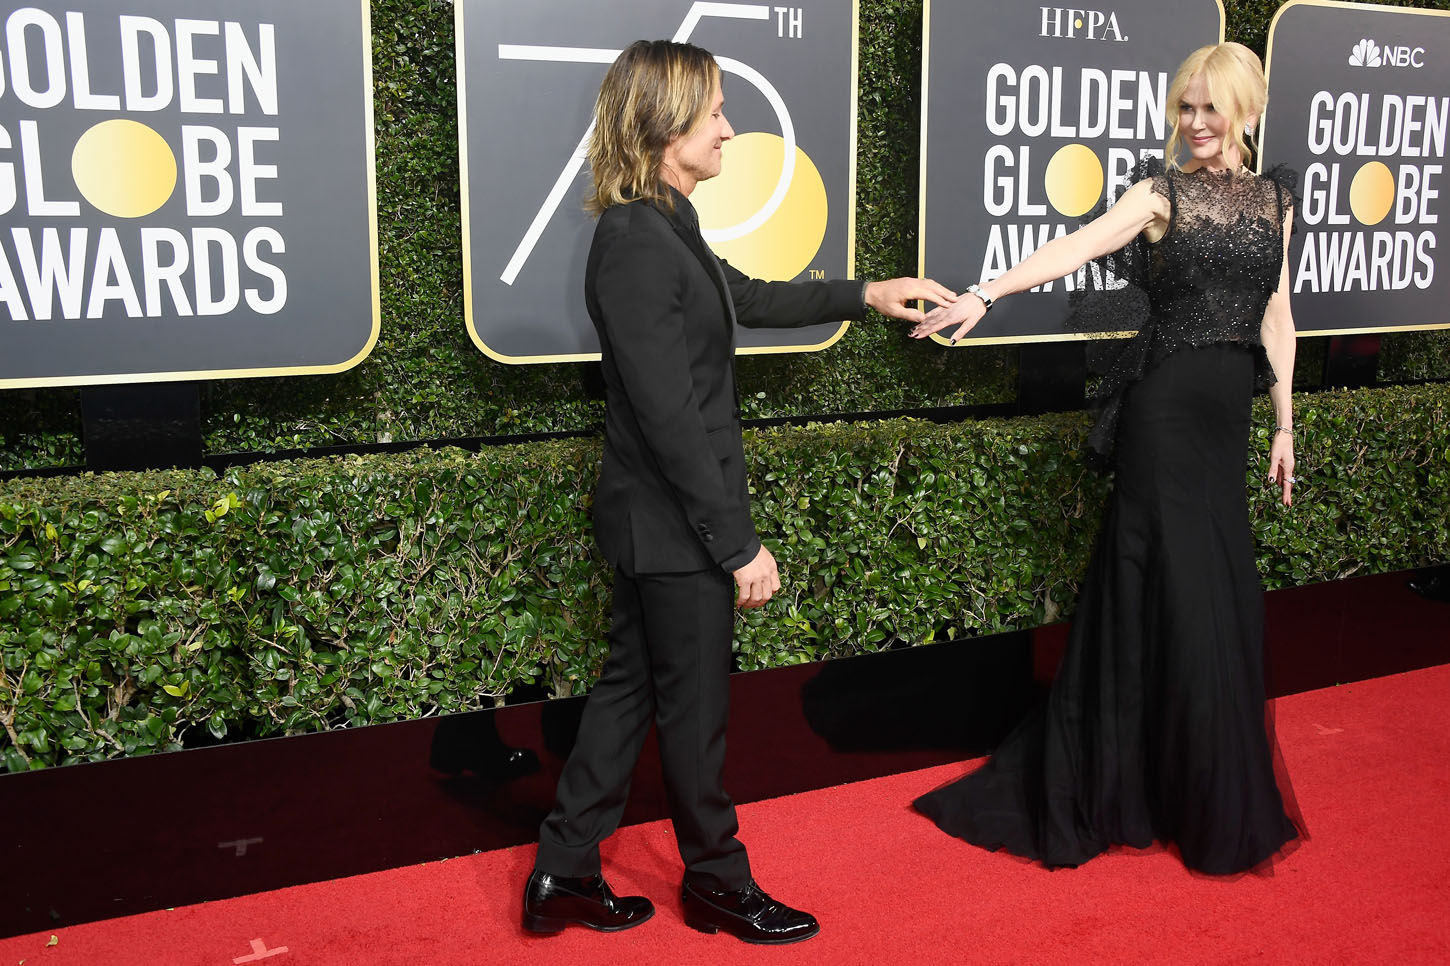 BEVERLY HILLS, CA - JANUARY 07:  Musician Keith Urban and actor Nicole Kidman attend The 75th Annual Golden Globe Awards at The Beverly Hilton Hotel on January 7, 2018 in Beverly Hills, California.  (Photo by Frazer Harrison/Getty Images)